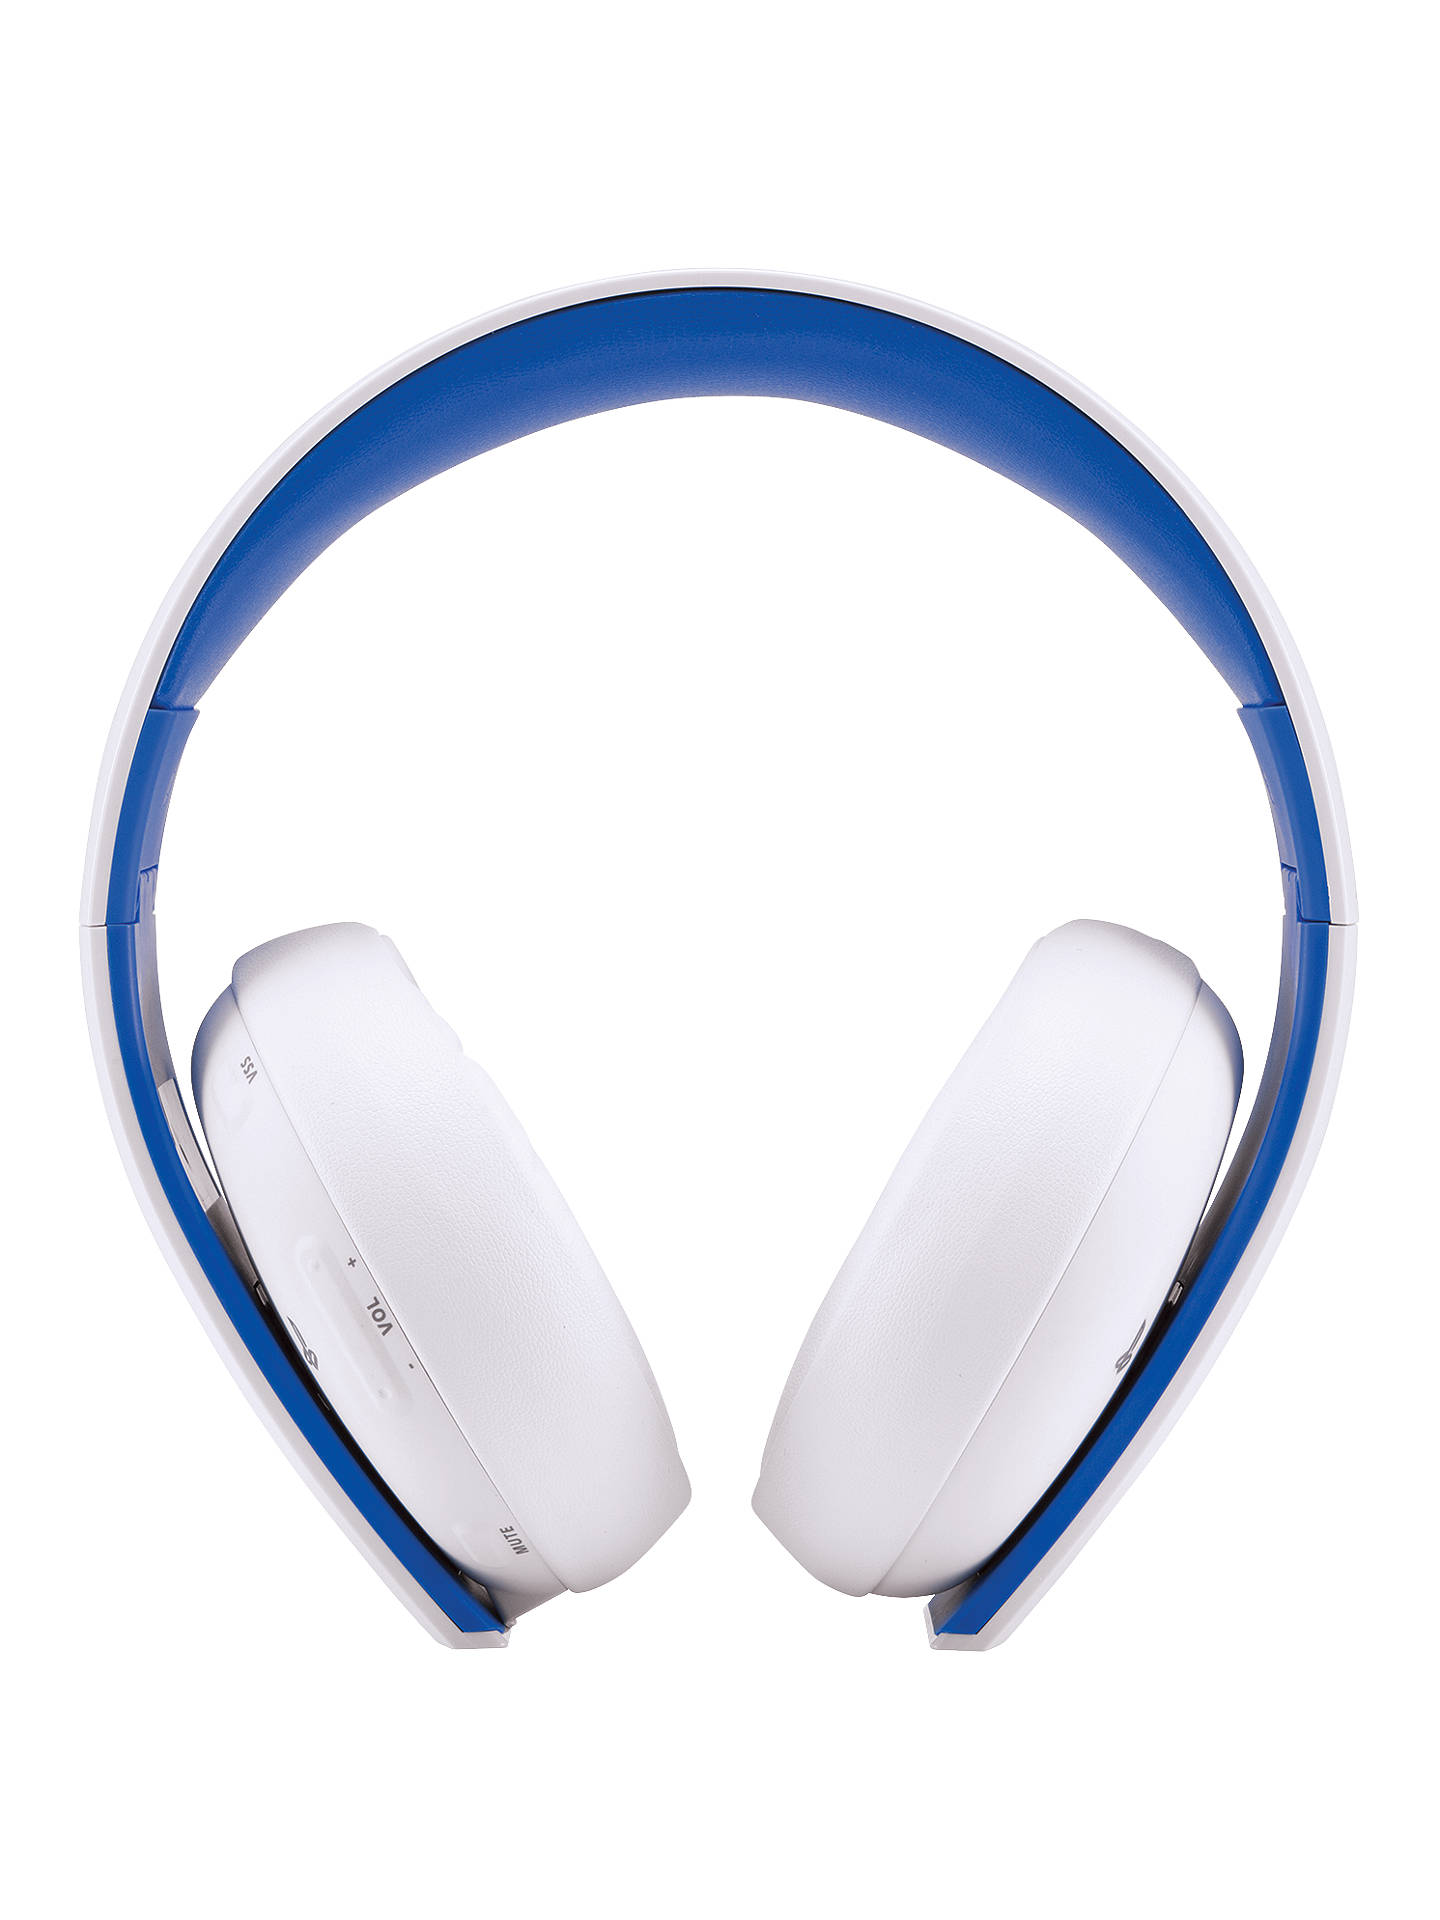 Buy Sony PlayStation Wireless Stereo Headset 2.0 for PS3 / PS4, White Online at johnlewis.com